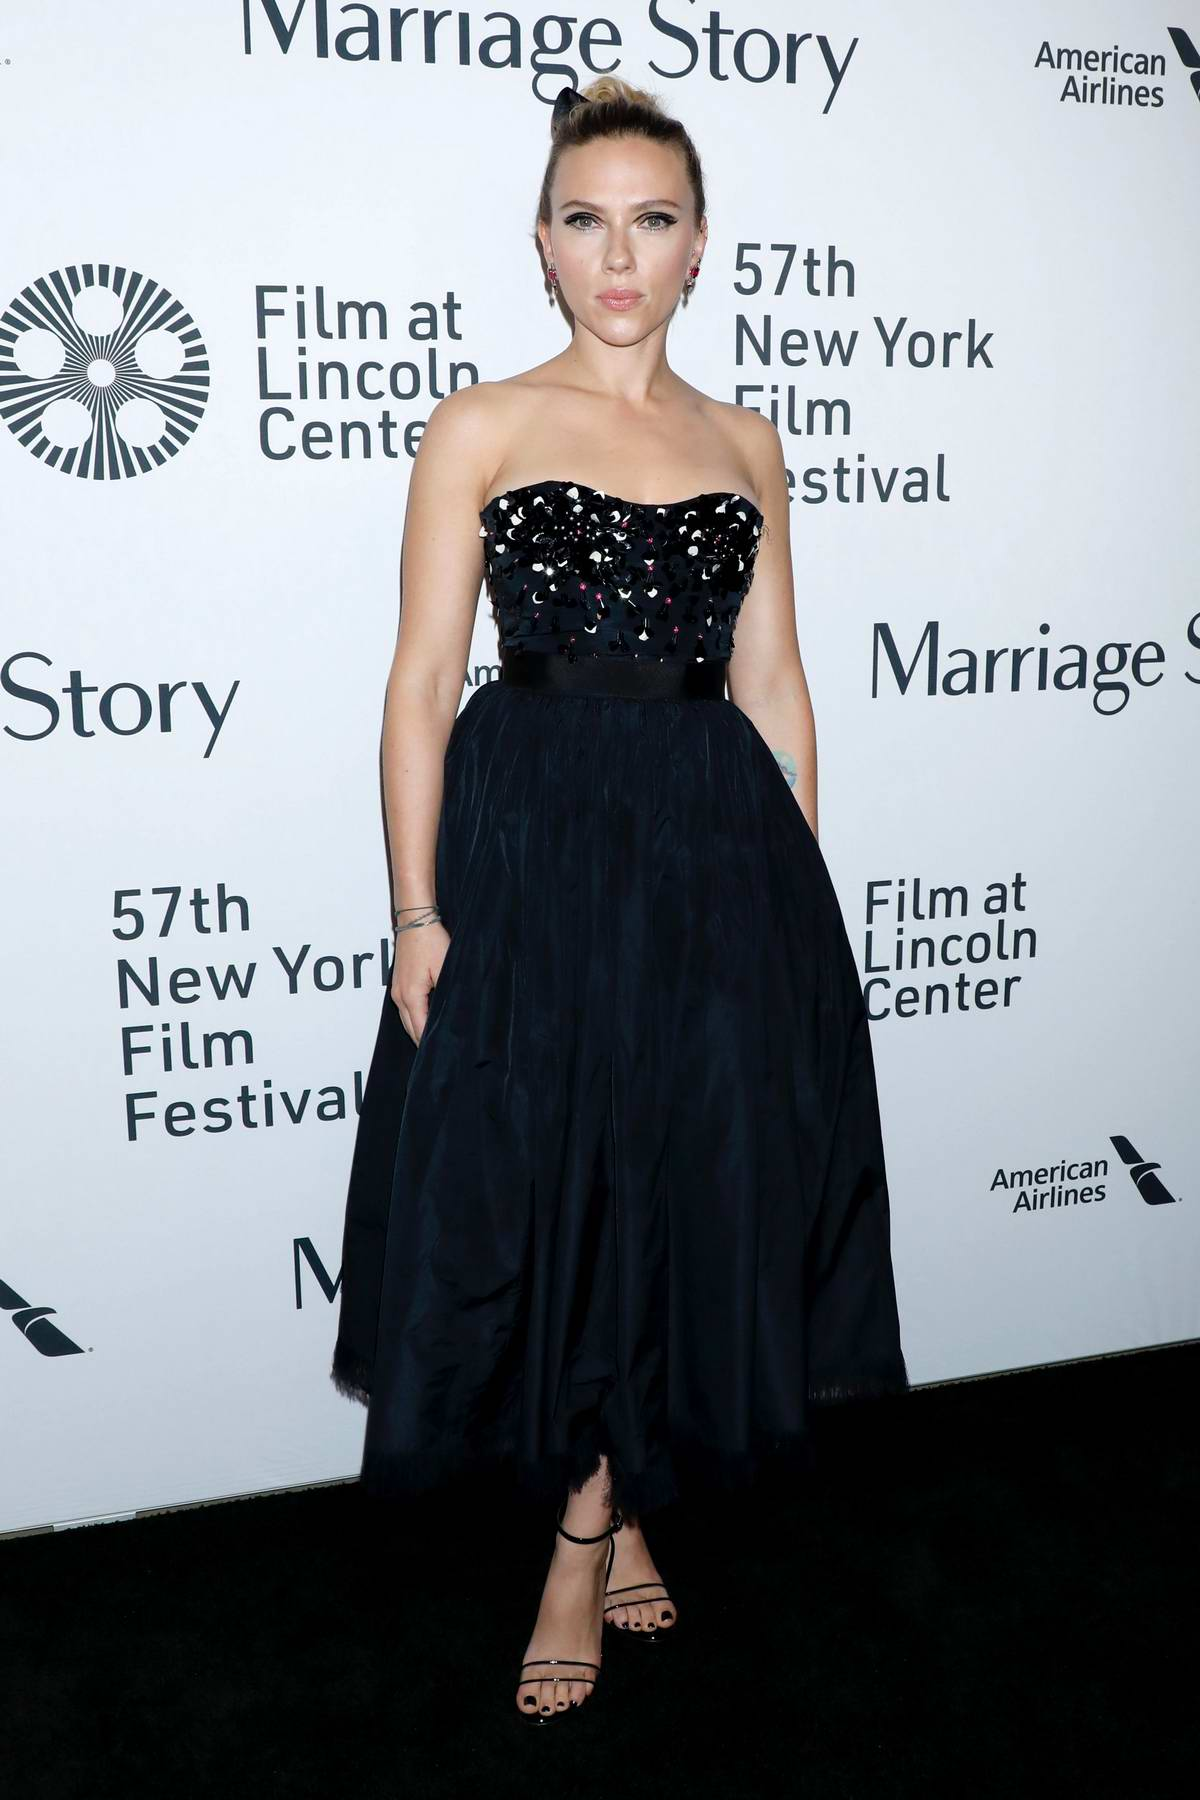 Scarlett Johansson attends the premiere of 'Marriage Story' during 57th New York Film Festival in New York City